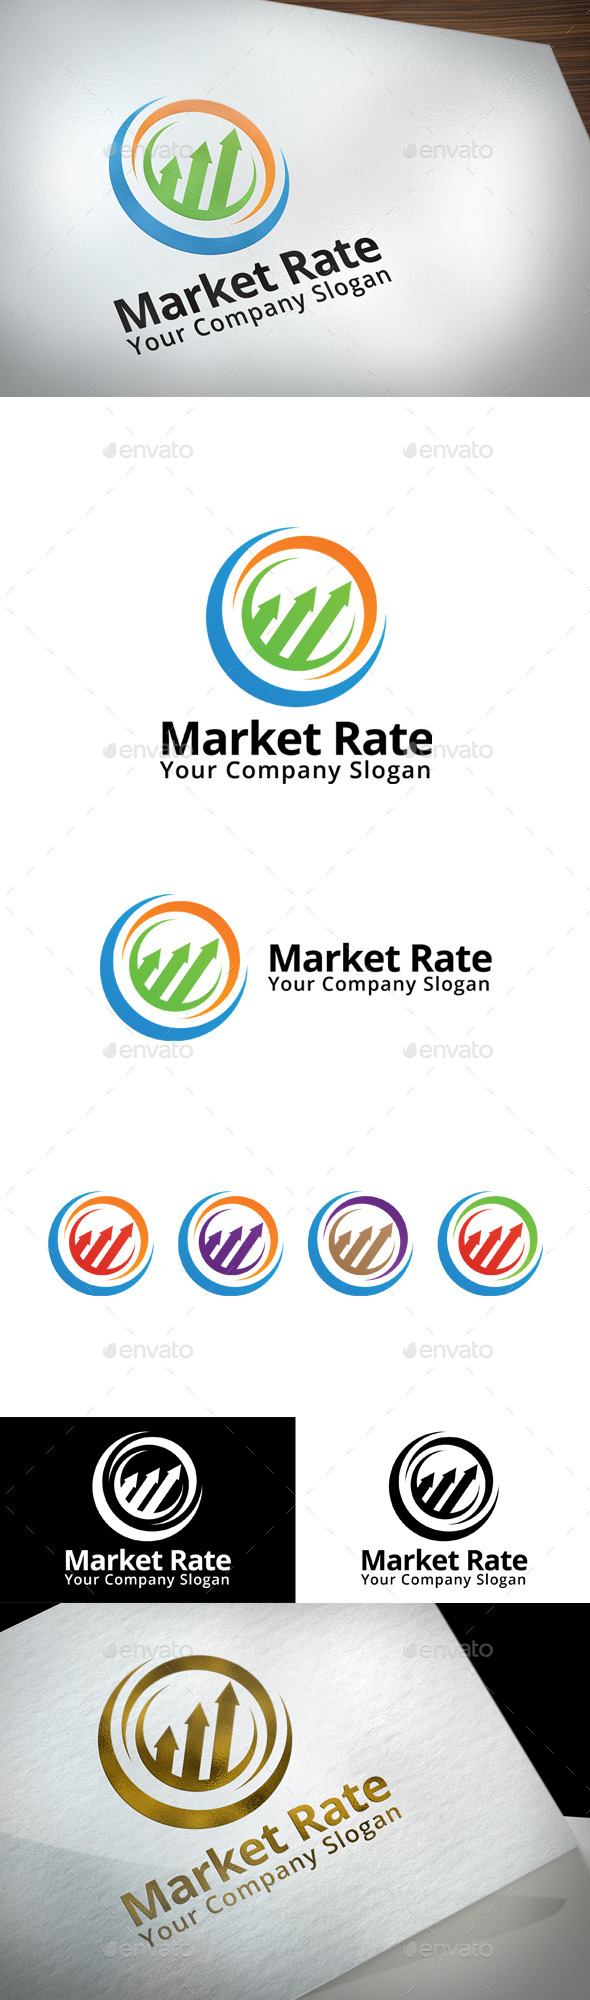 GraphicRiver Market Rate 11447382